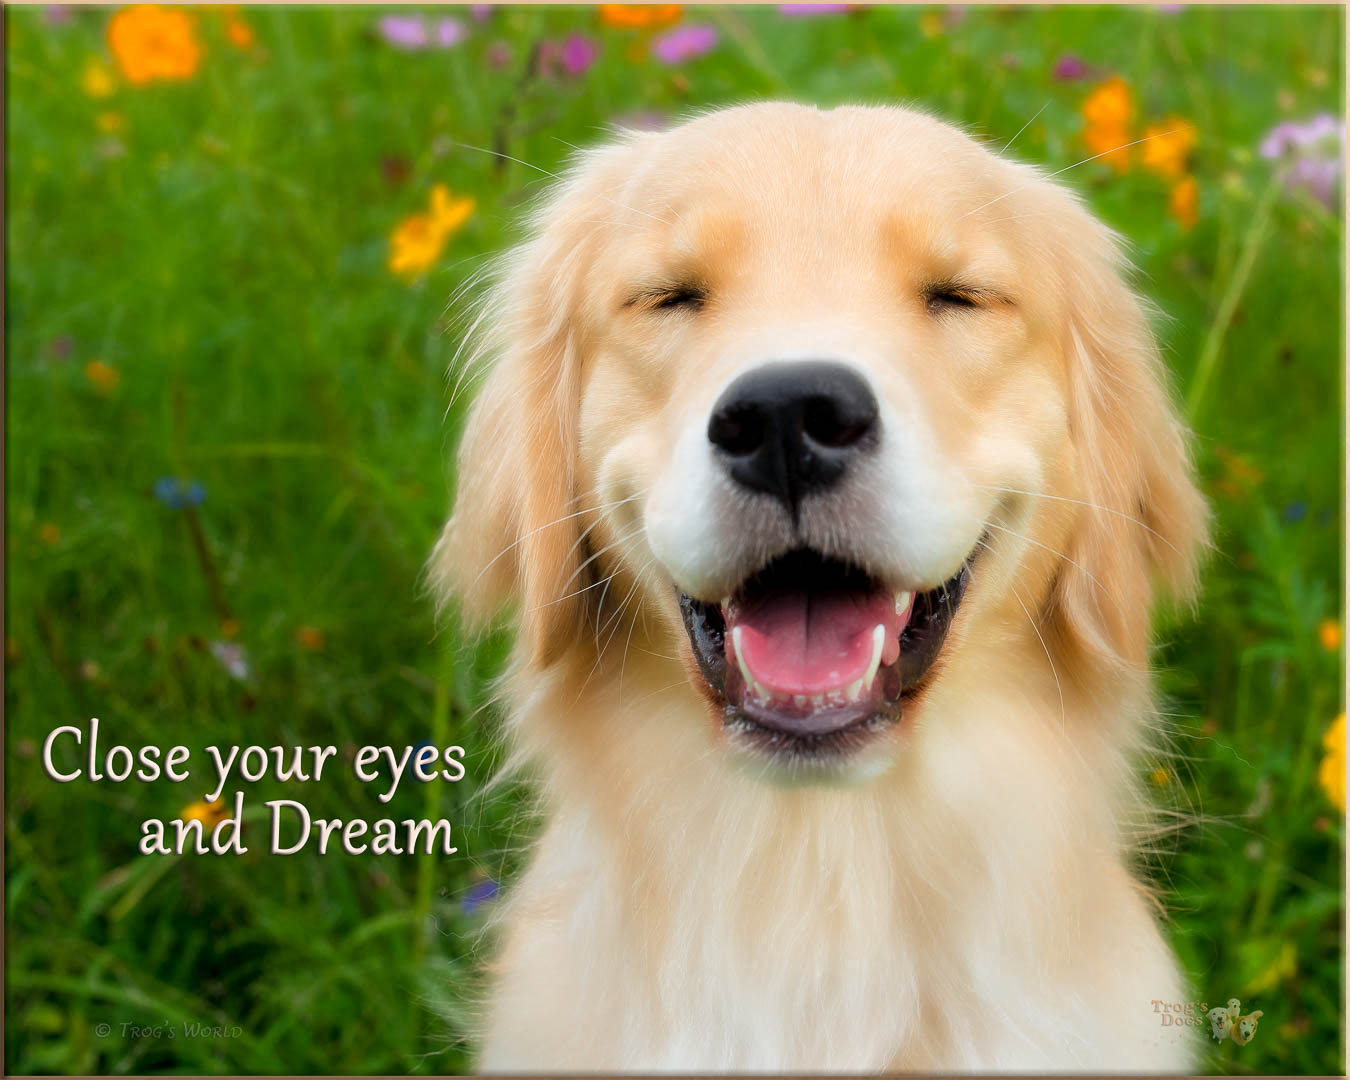 Golden Retriever closing its eyes and dreaming